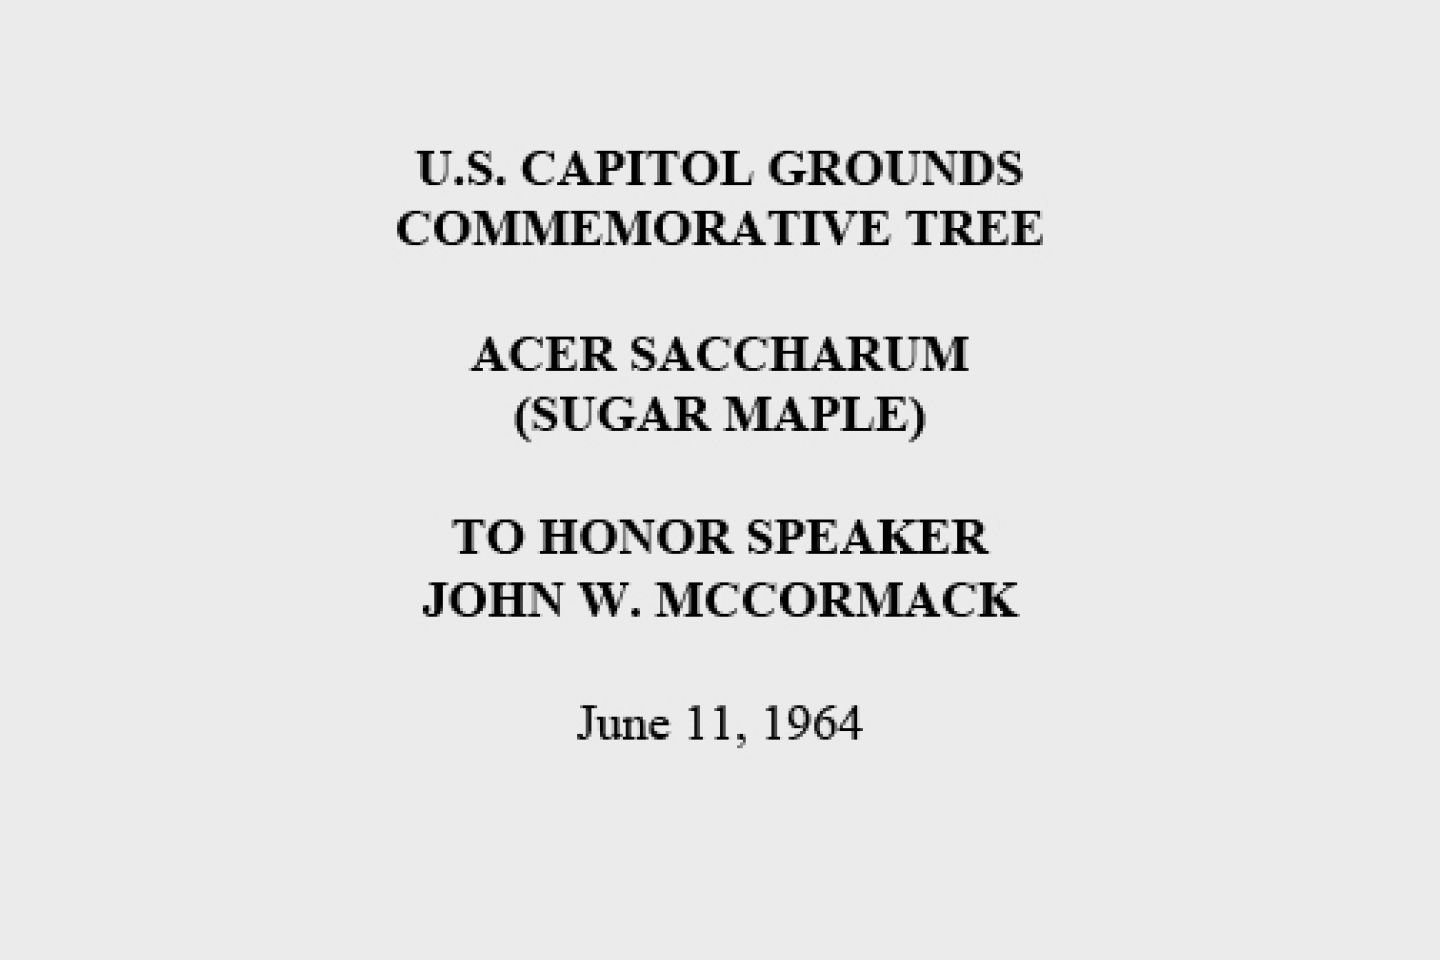 U.S. Capitol Grounds Commemorative Tree  Acer saccharum (Sugar Maple)  To Honor Speaker John W. McCormack  June 11, 1964